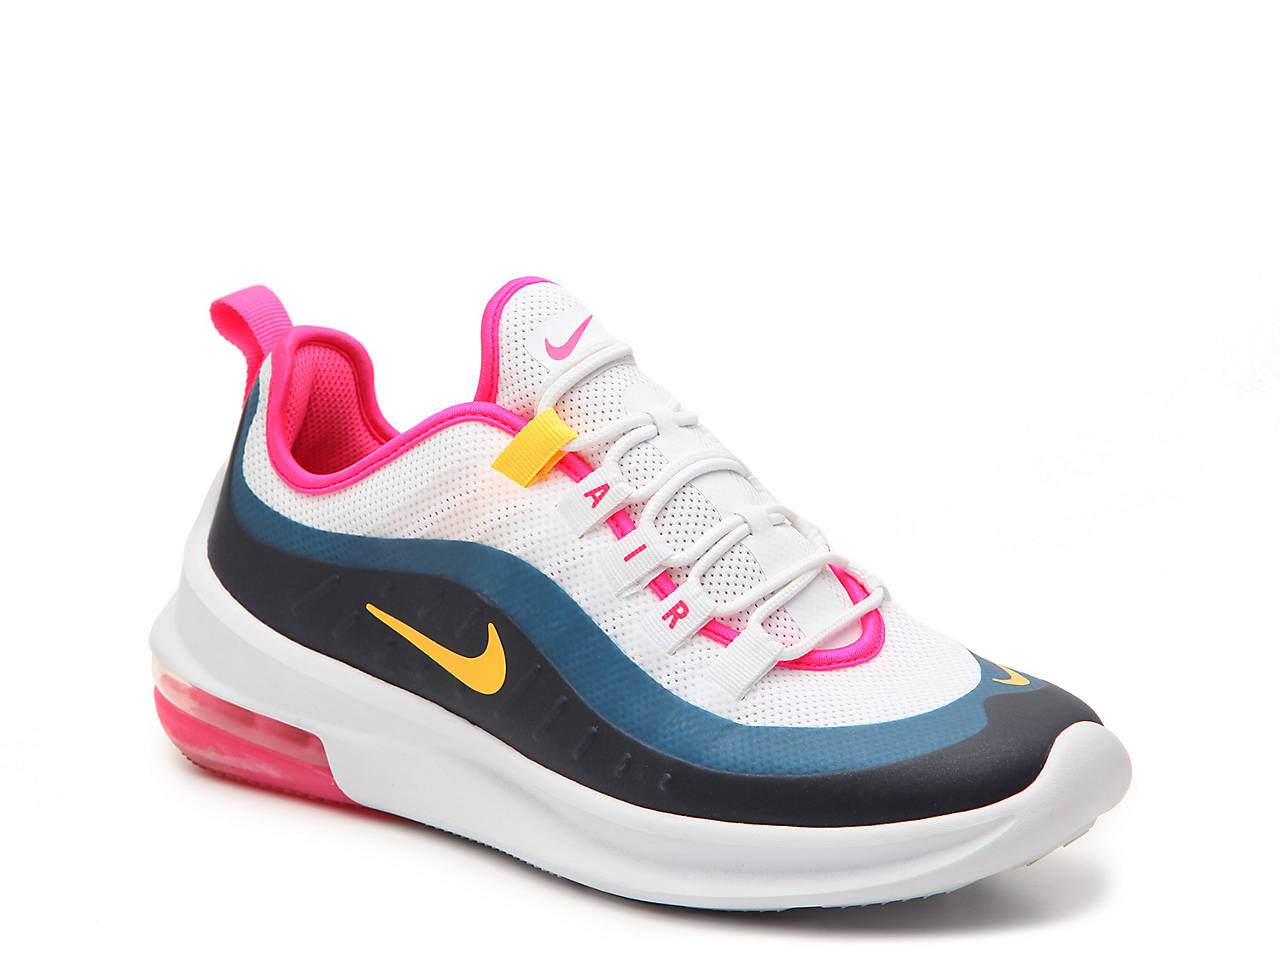 new arrival 6ba4b d5804 Nike. Air Max Axis Sneaker - Womens